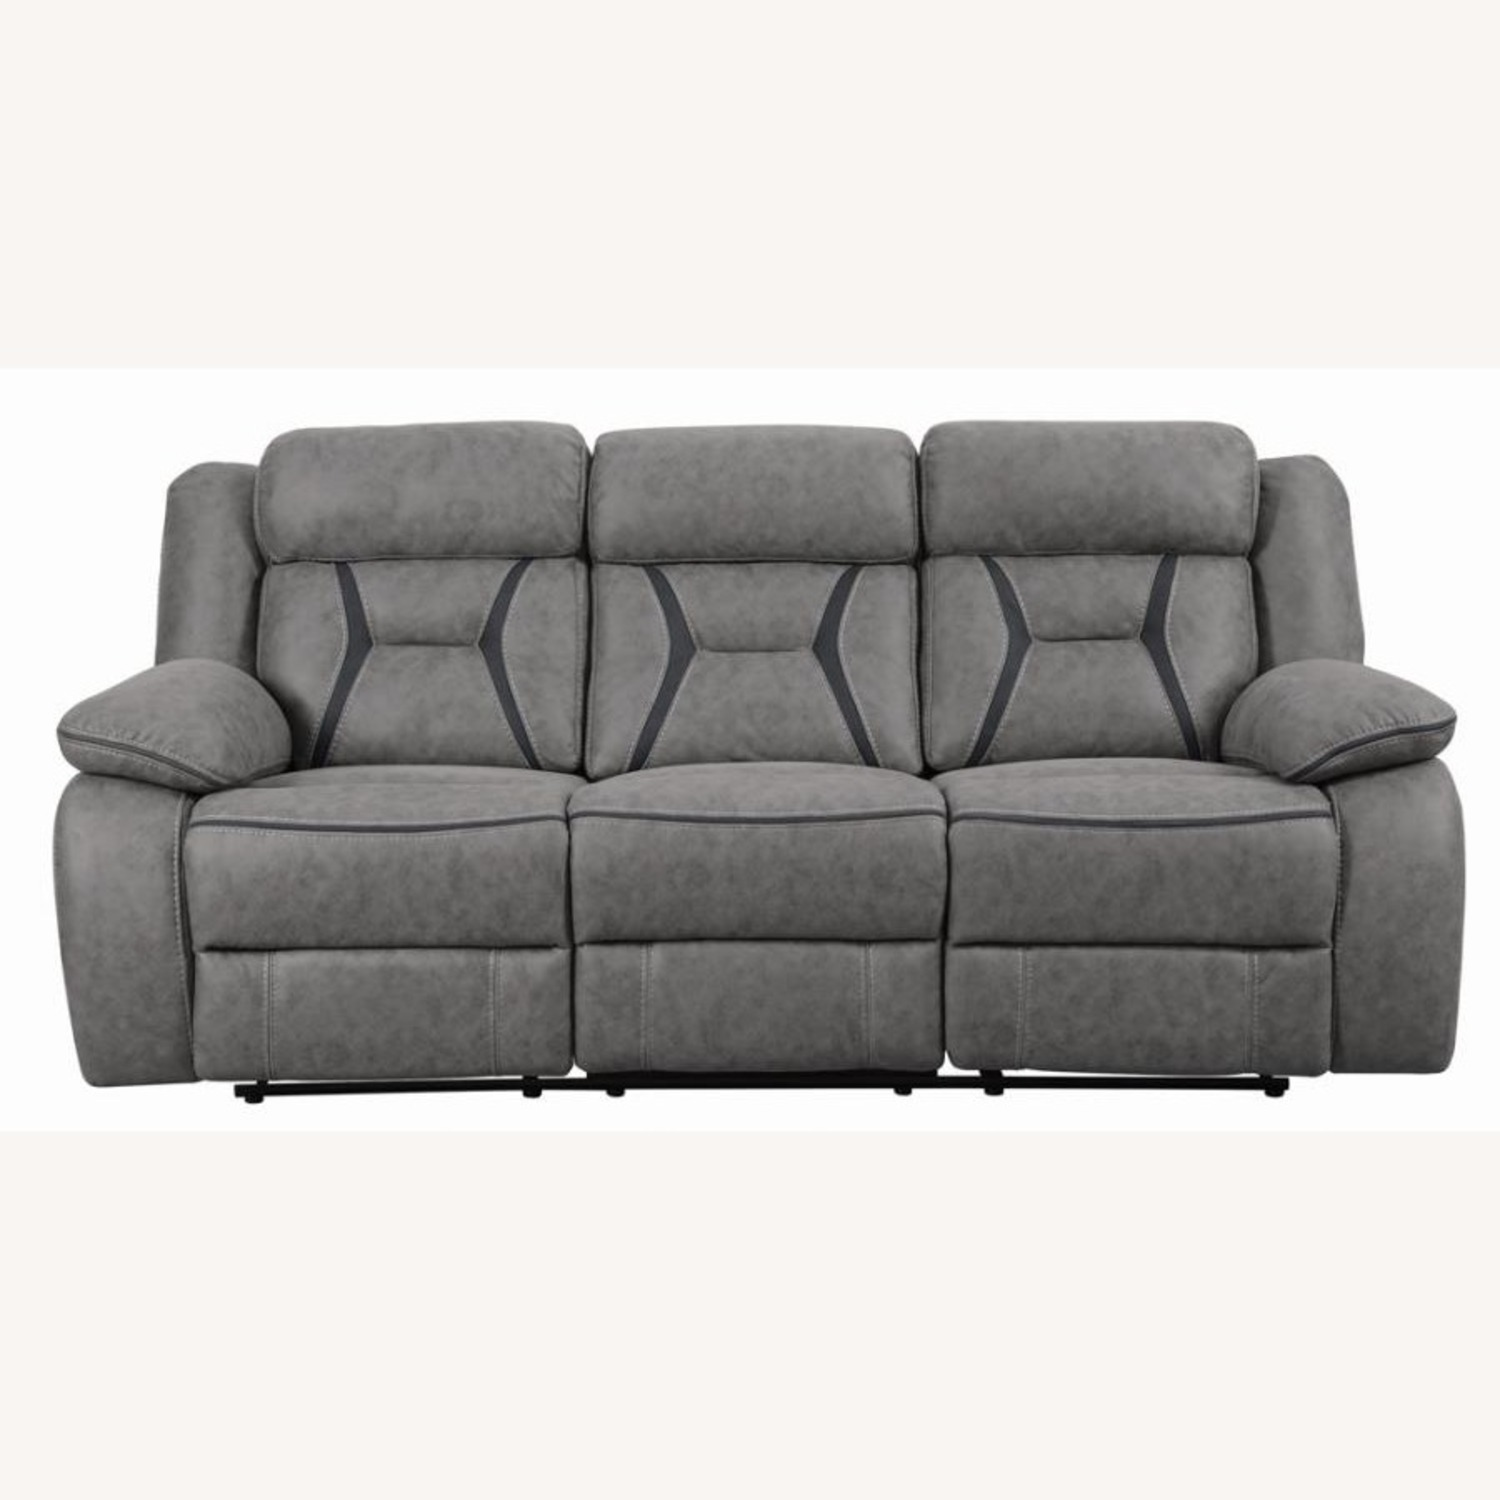 Motion Sofa In Grey Suede W/ Wall Hugger Mechanism - image-1